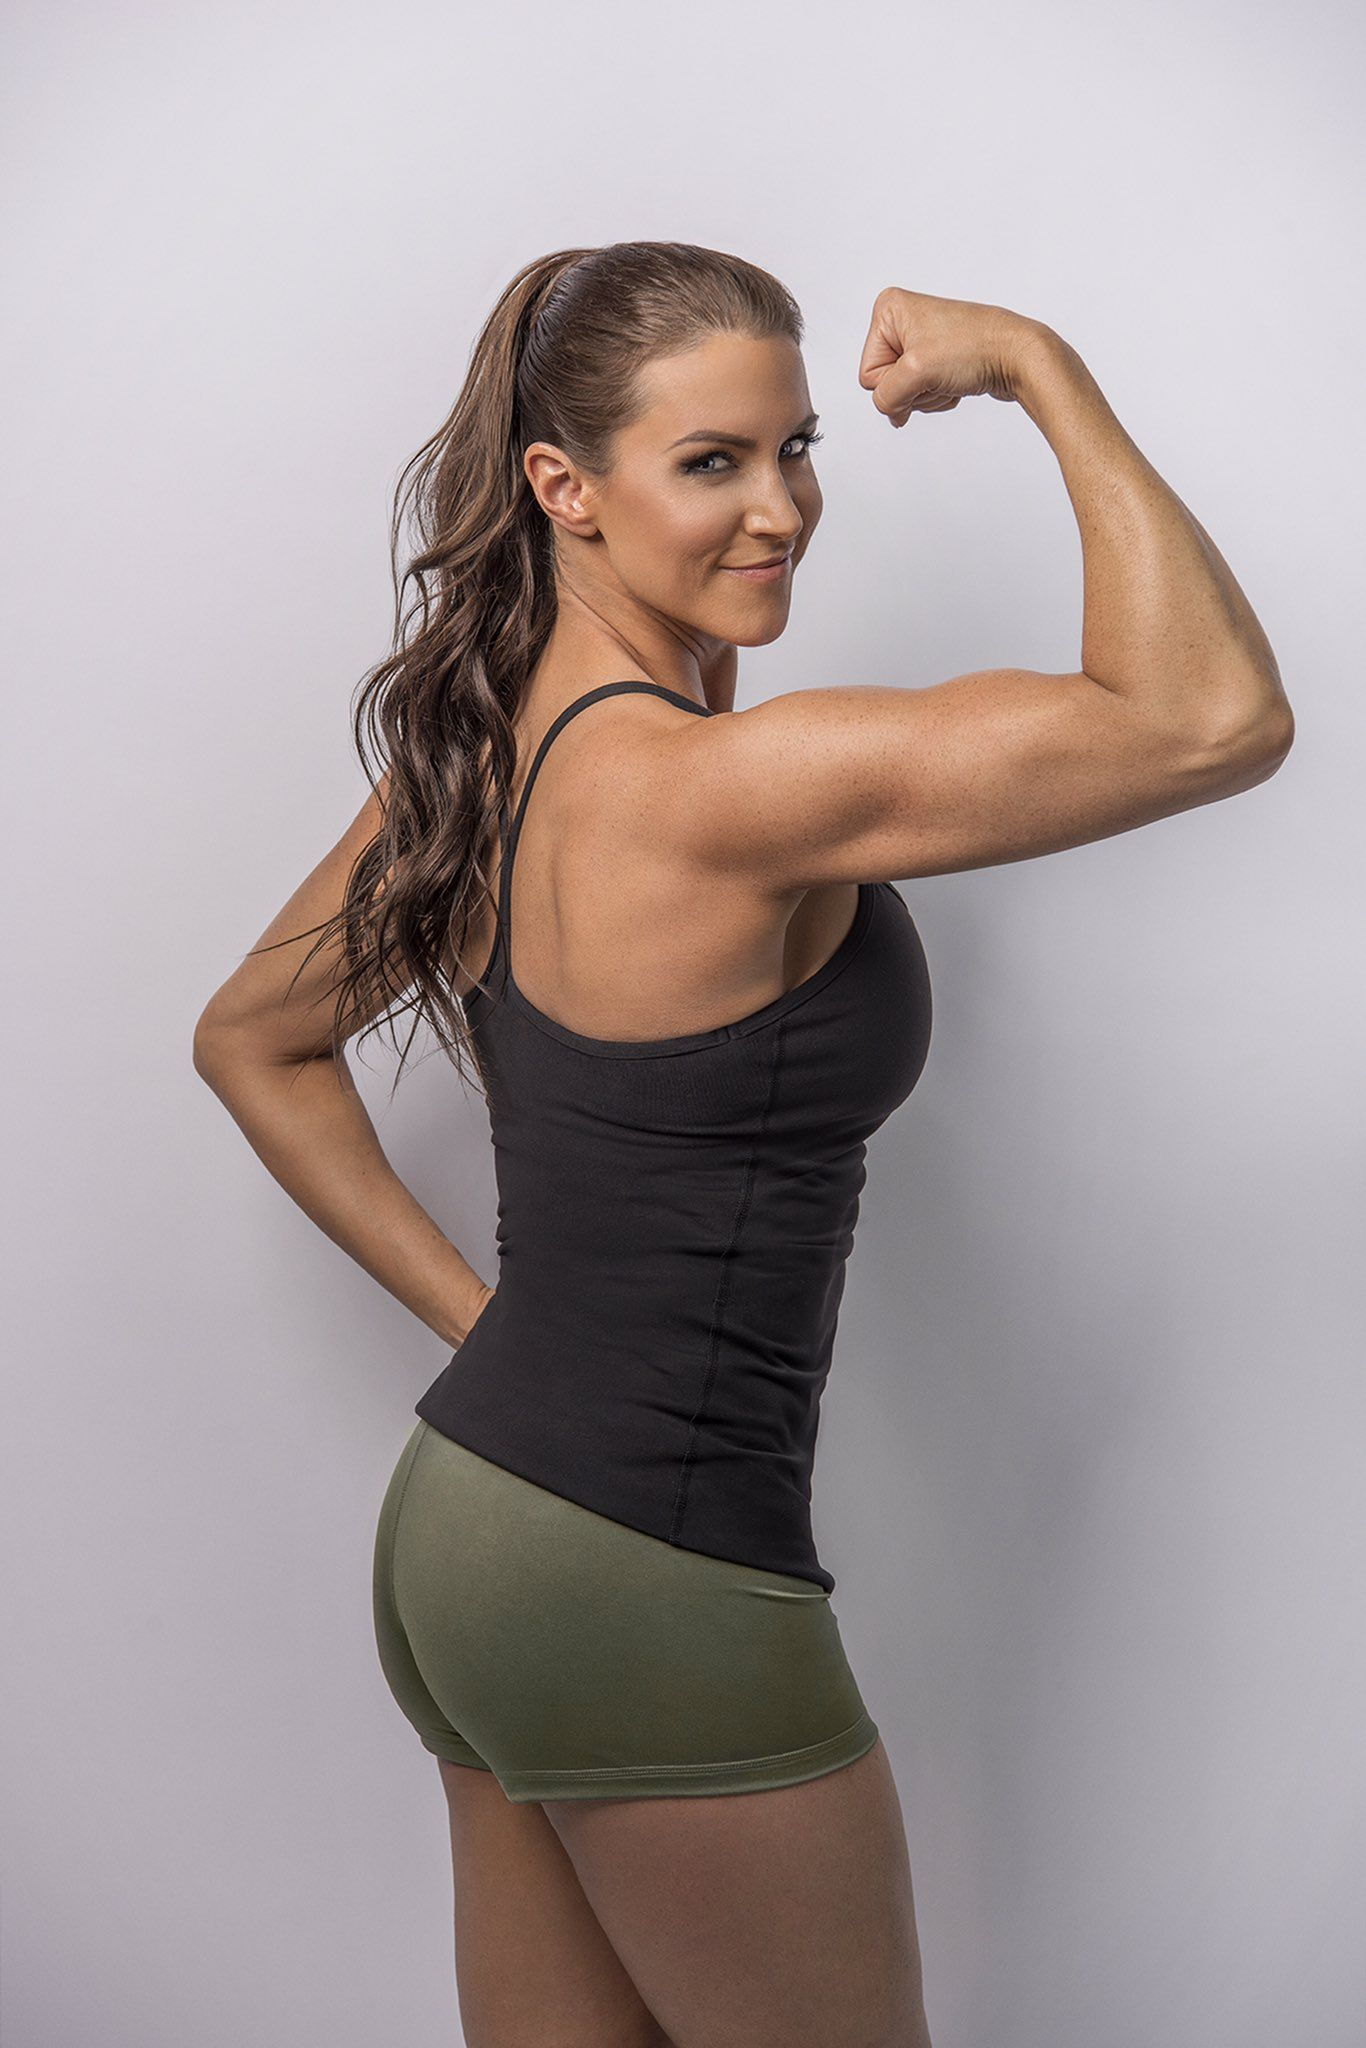 What, xxx stephanie mcmahon falska hd thank for